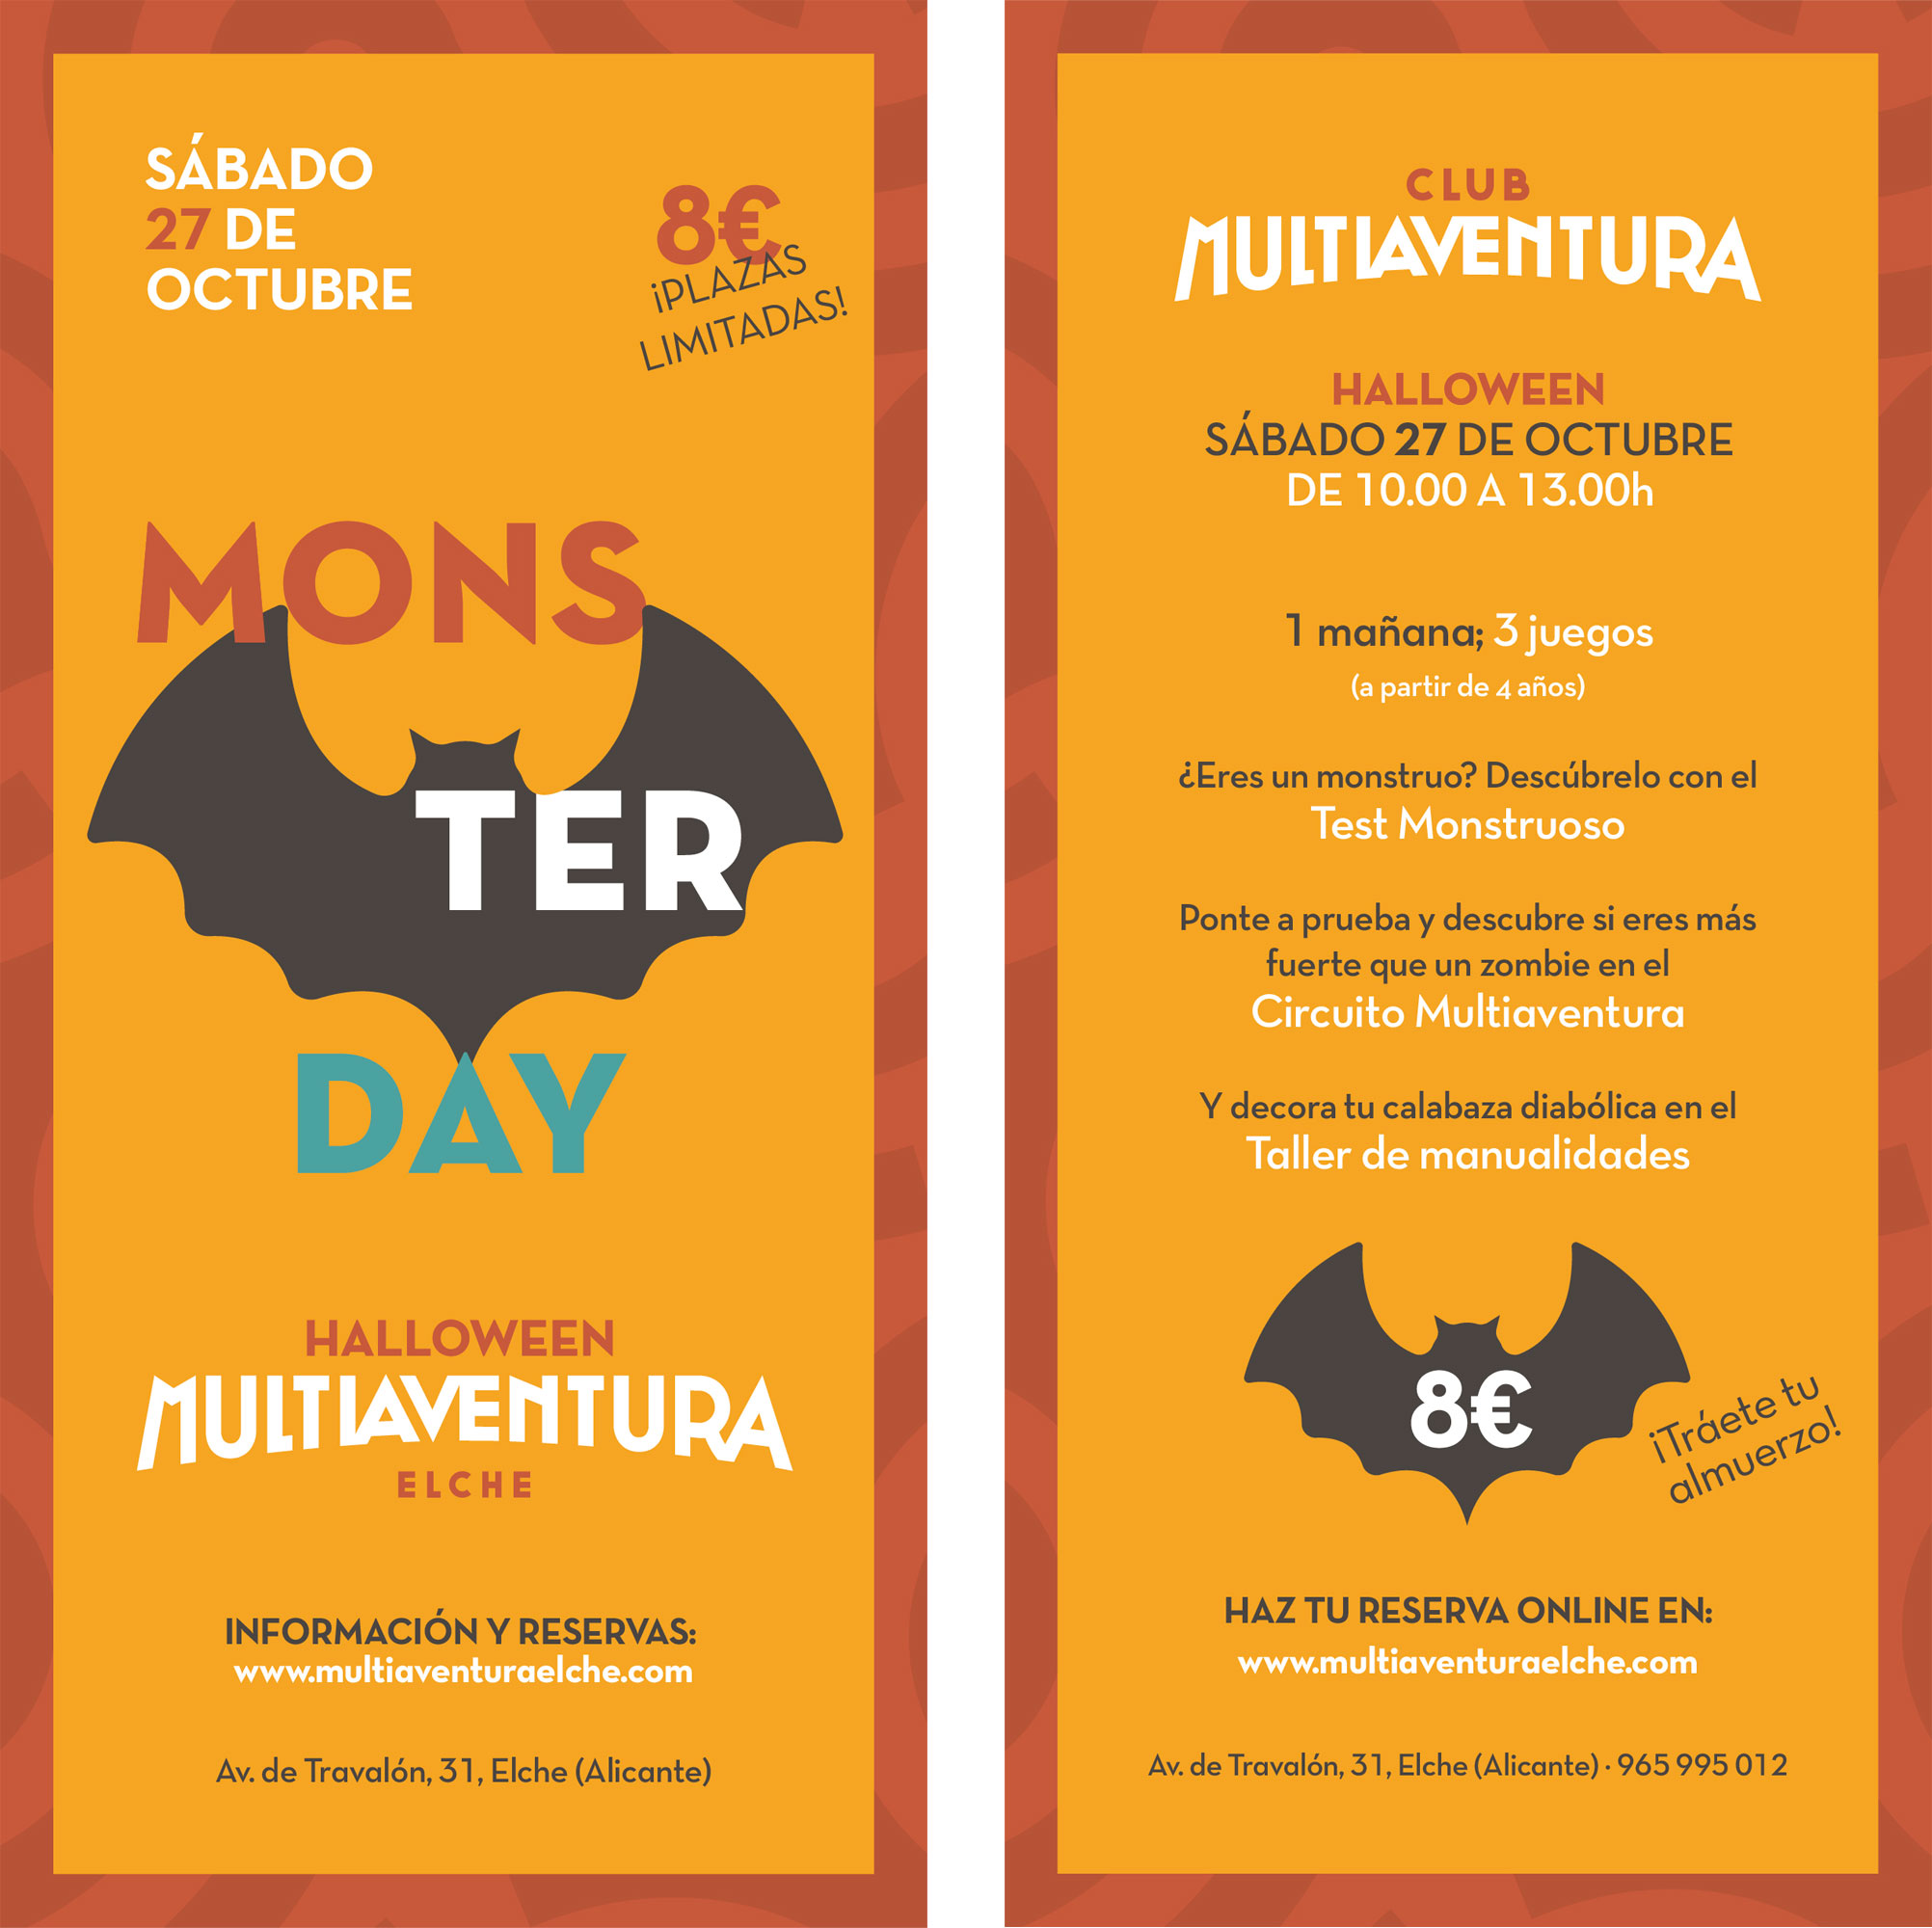 MonsterDay_MultiaventuraElche_Halloween